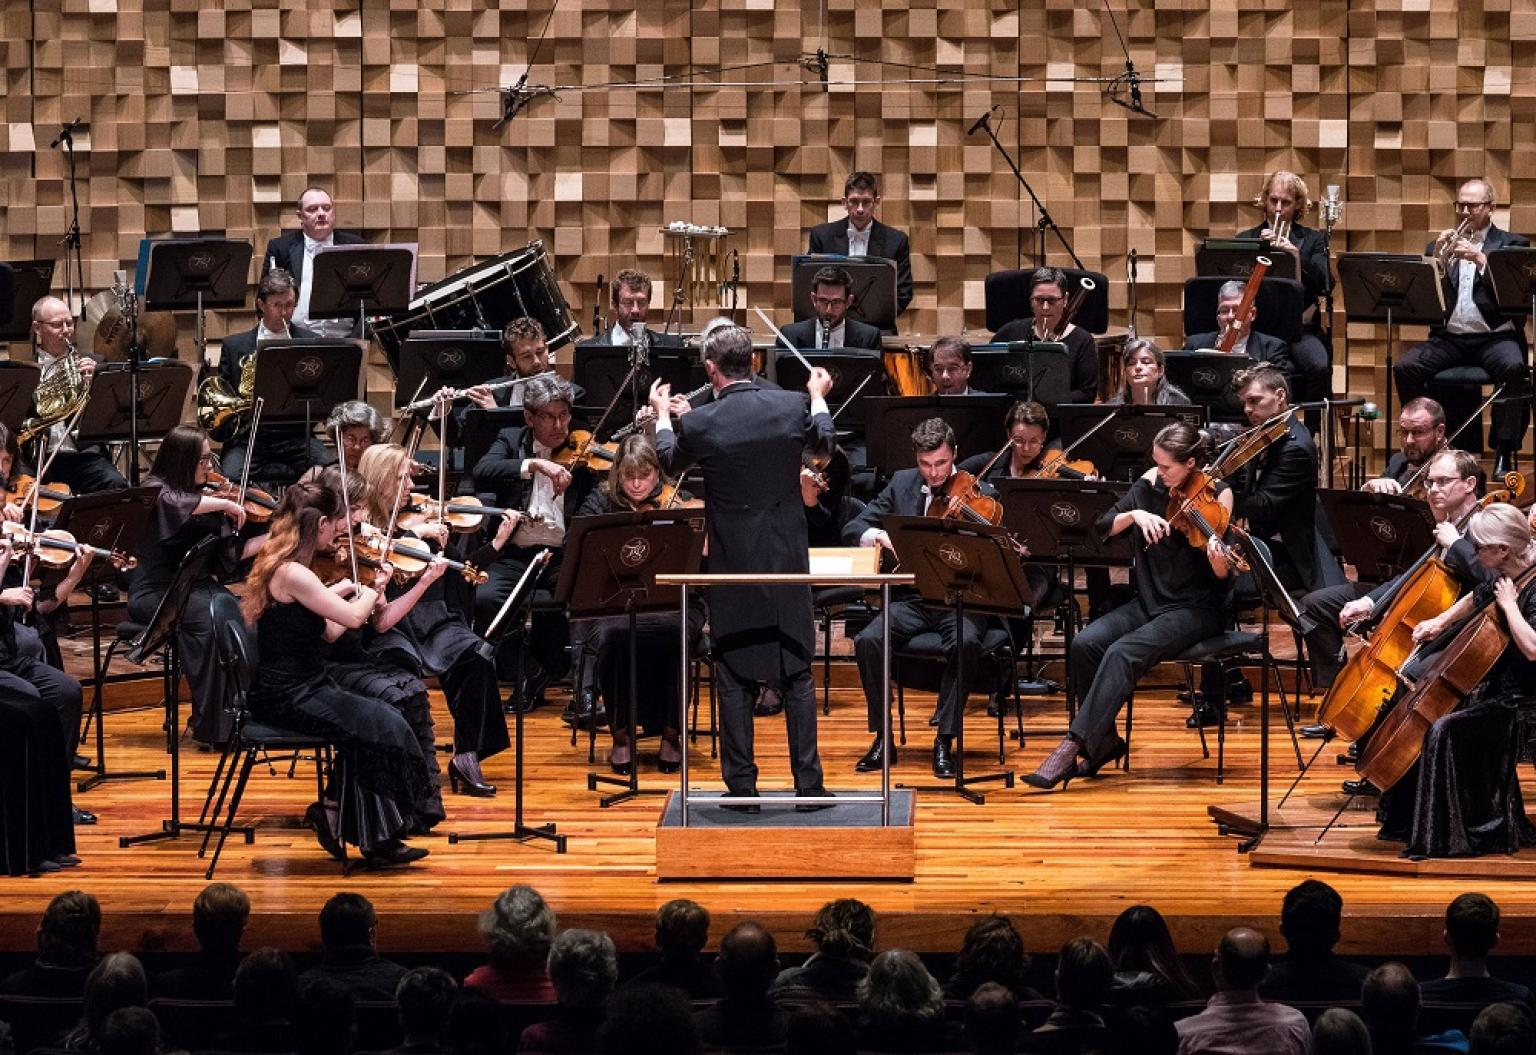 The Tasmanian Symphony Orchestra performing.